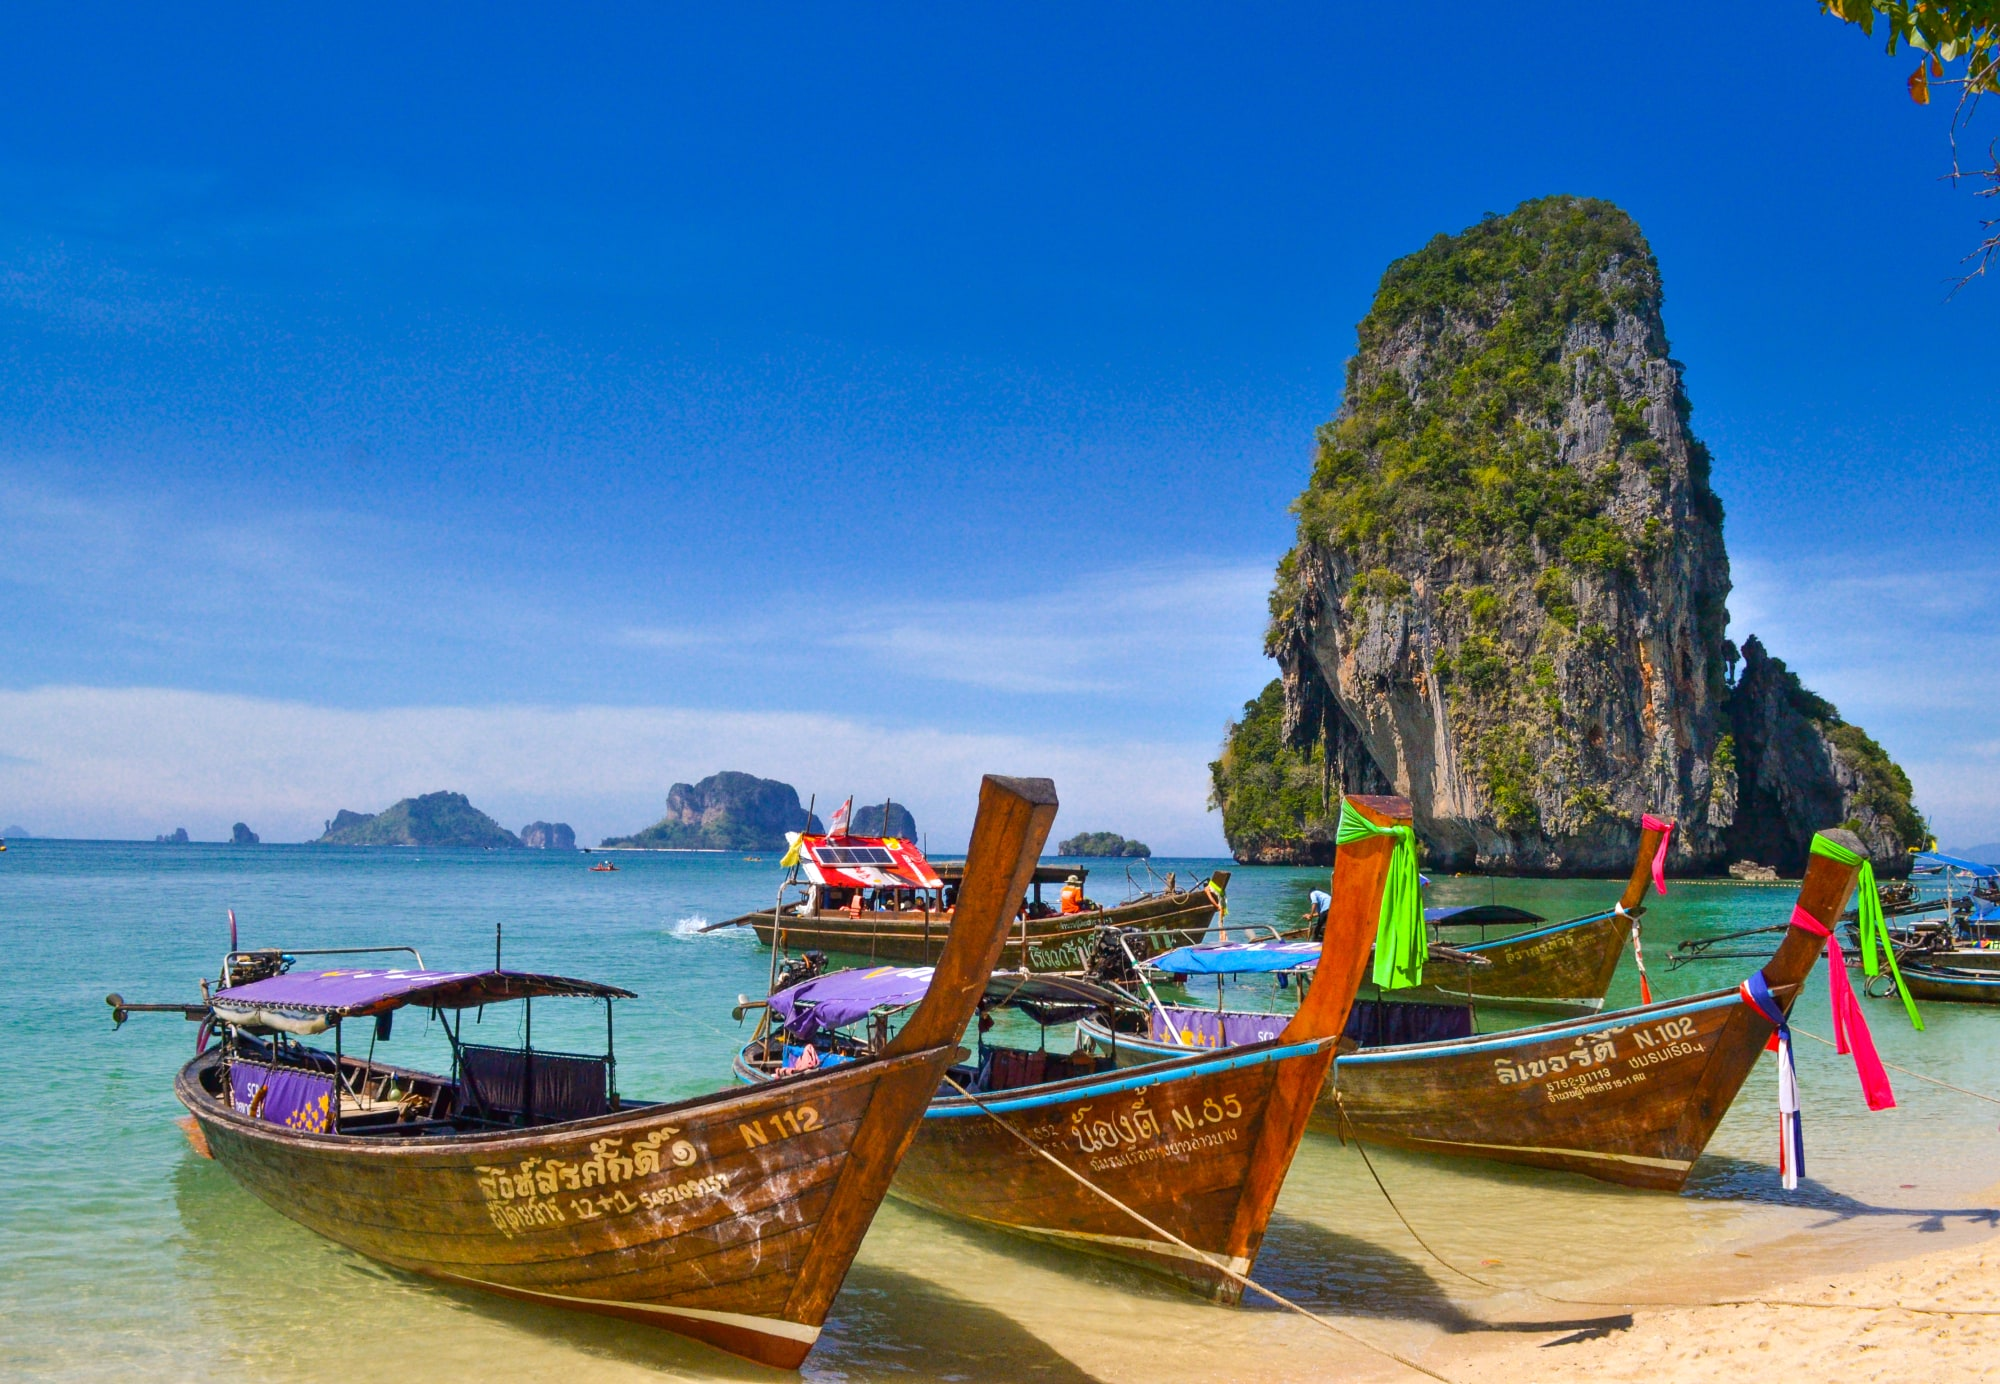 Thailand the Land of Smile Opening its borders for foreign tourist via Special Tourist Visa